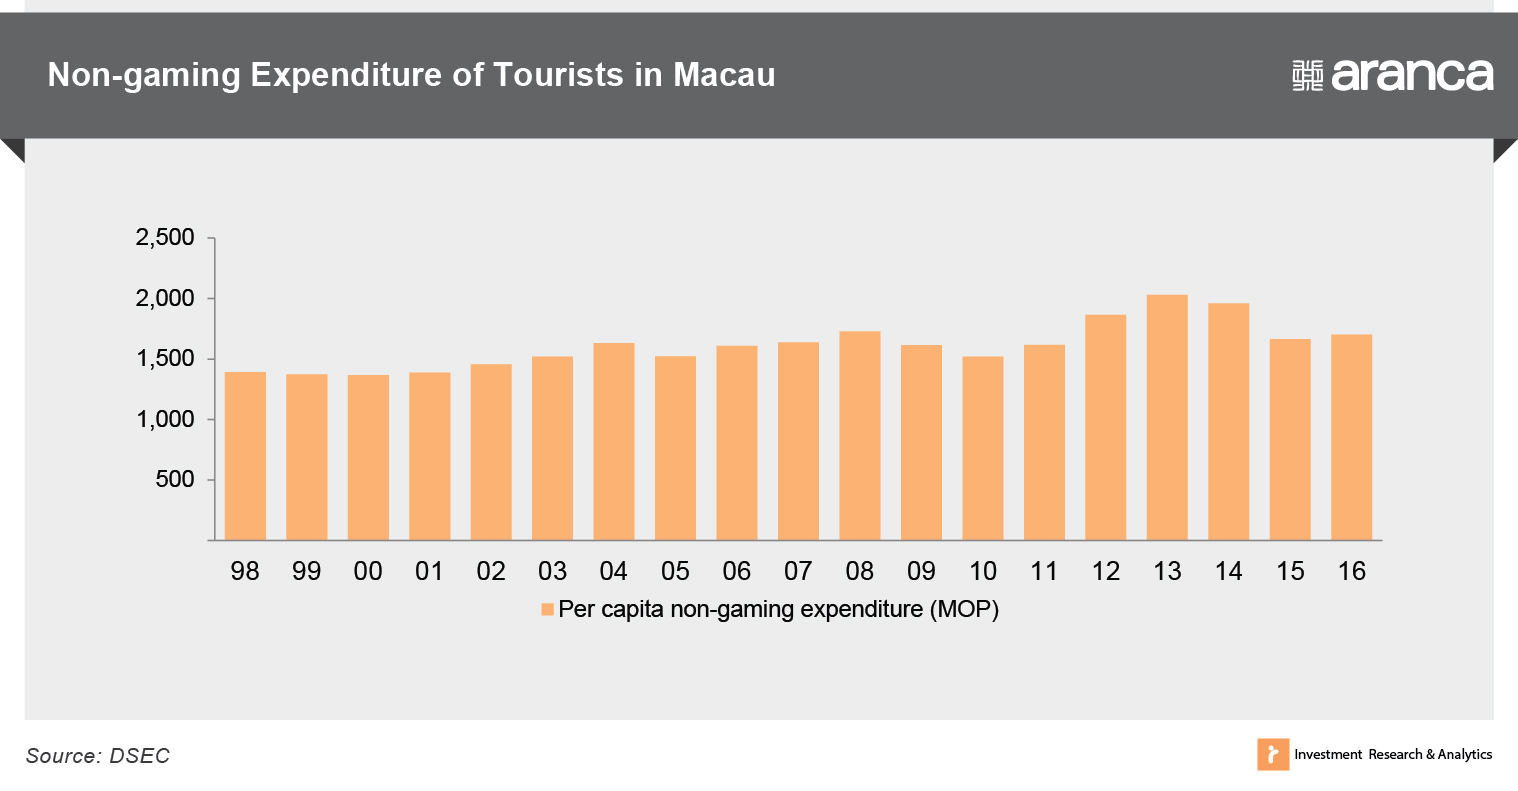 Non-gaming expenditure of tourists in Macau